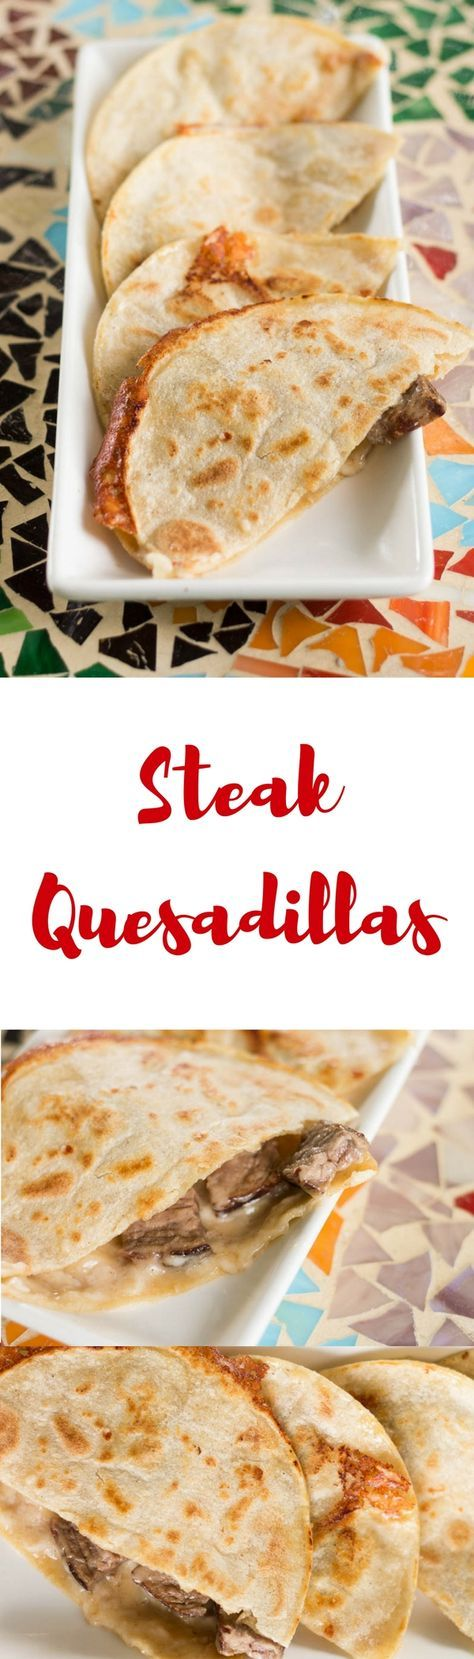 If you've never used corn tortillas to make steak quesadillas, you're in for a treat! This steak quesadilla recipe is super easy and so delicious. #AuthenticSalsaStyle #ad @HerdezBrand @walmart